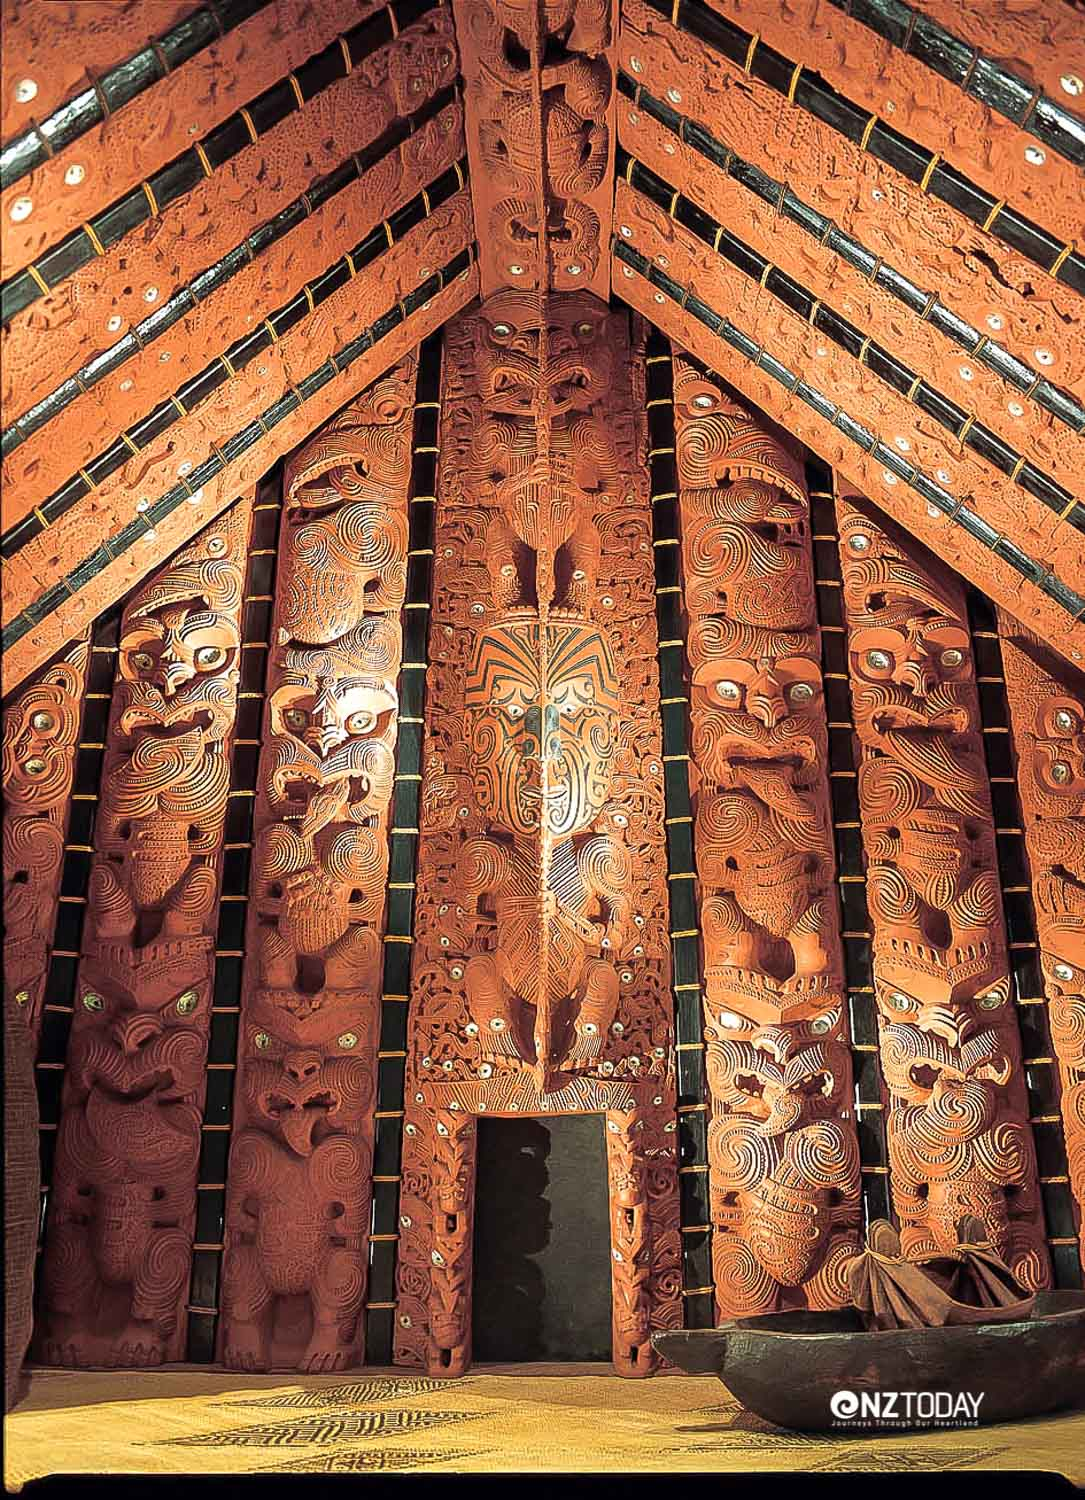 Magnificent collections of taonga are housed in Tāmaki Paenga Hira